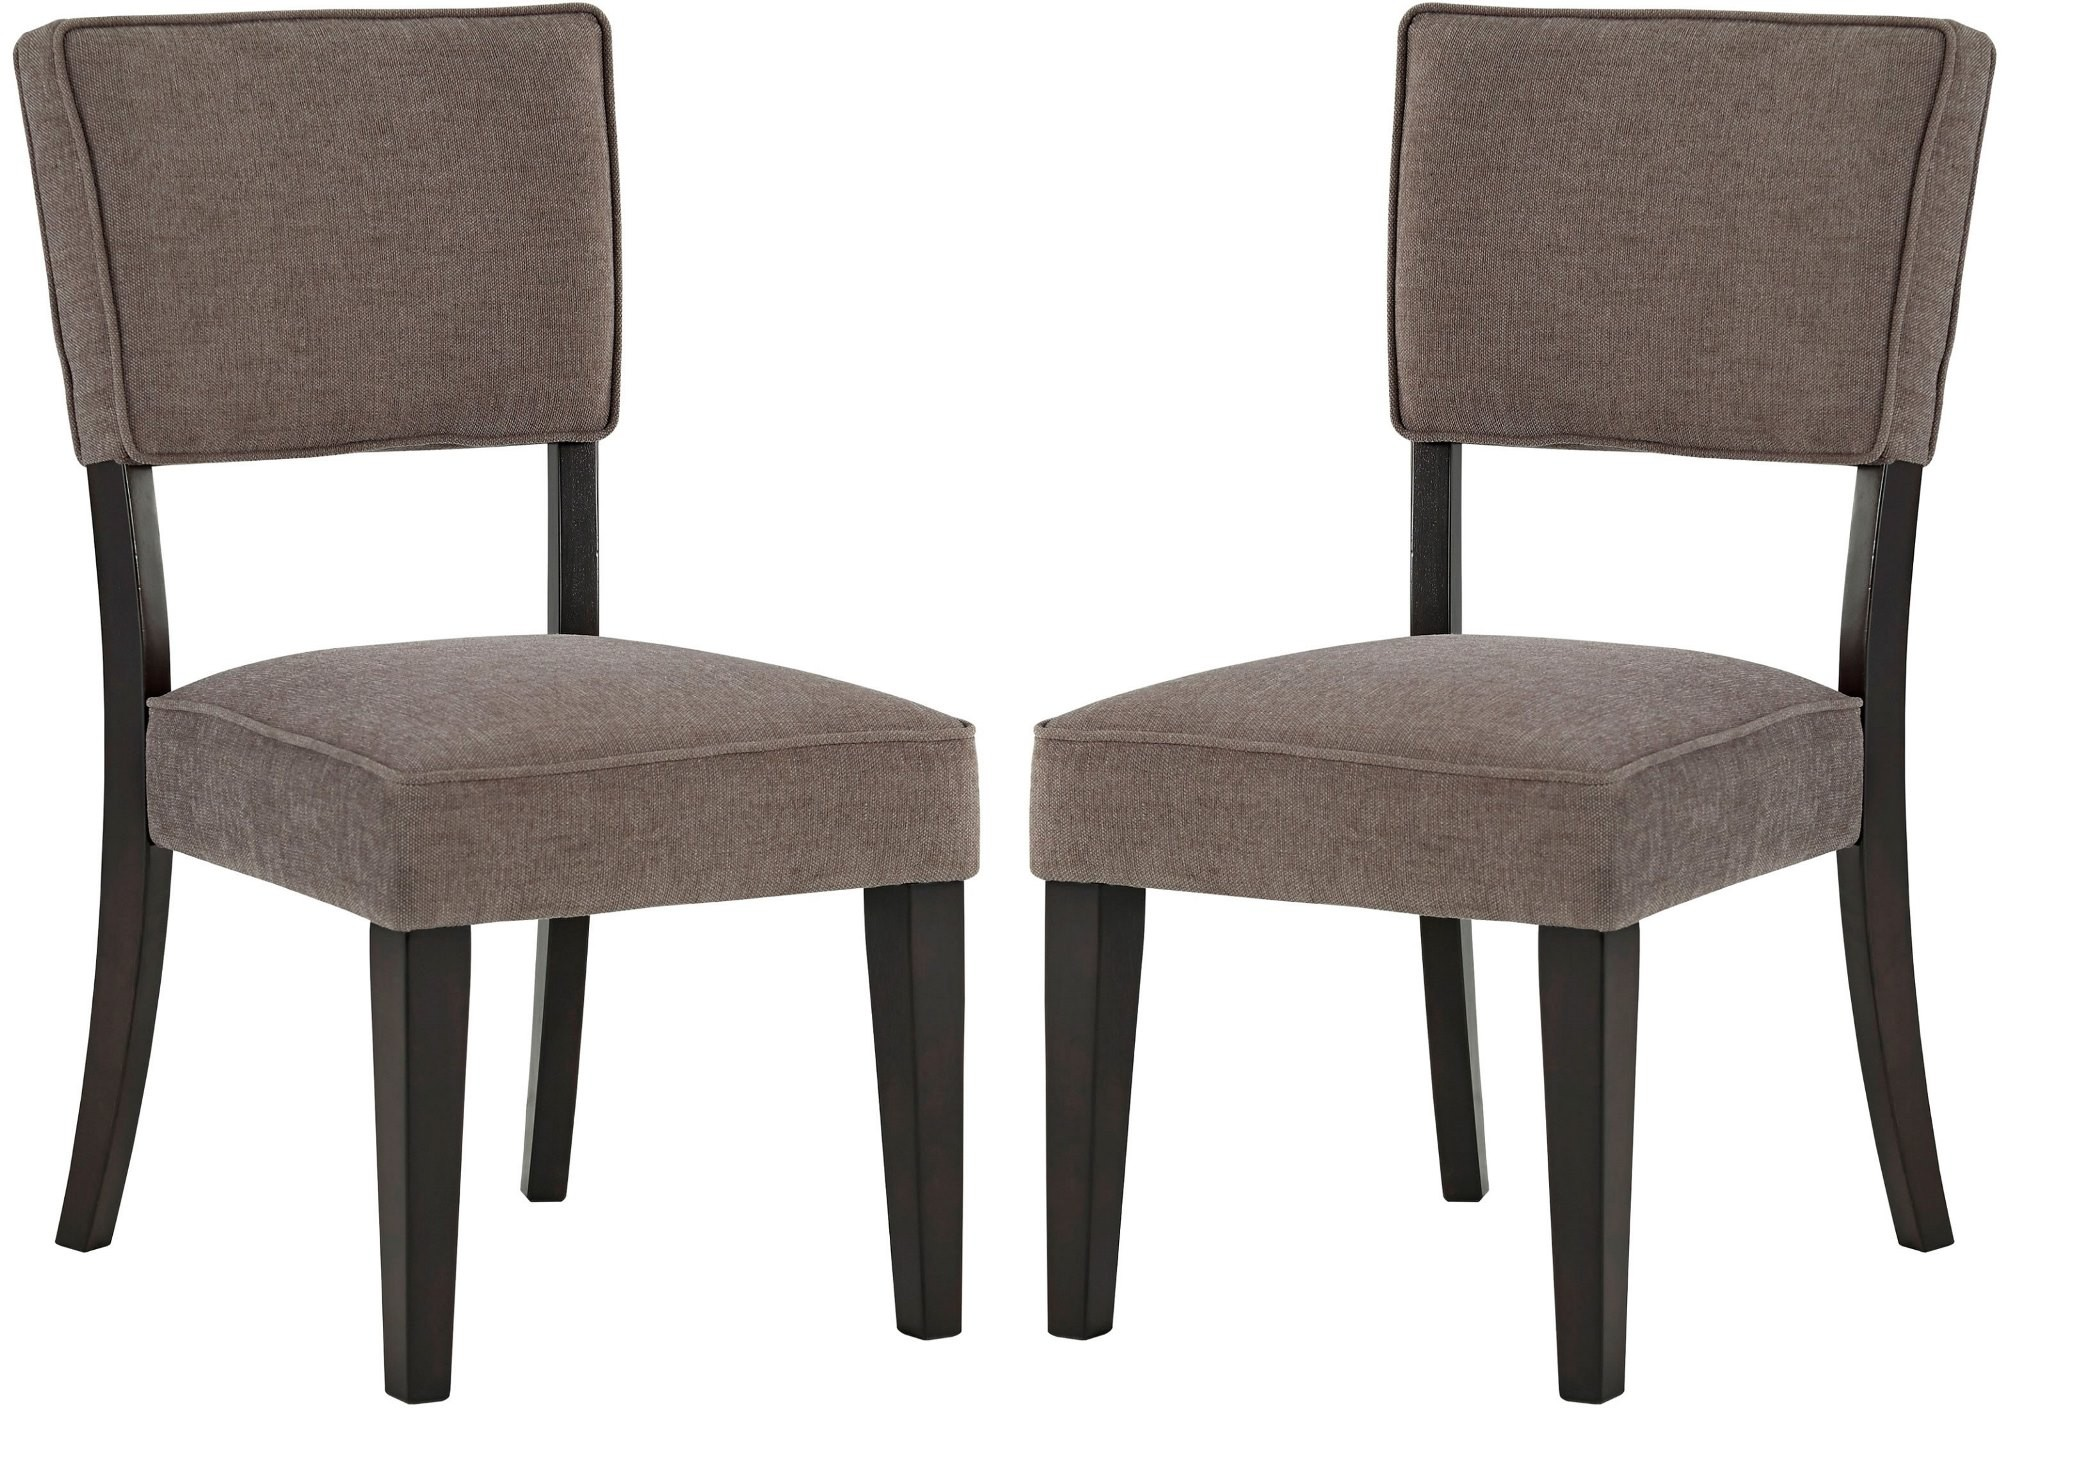 Grey Upholstered Chair Gavelston Grey Dining Upholstered Side Chair Set Of 2 From